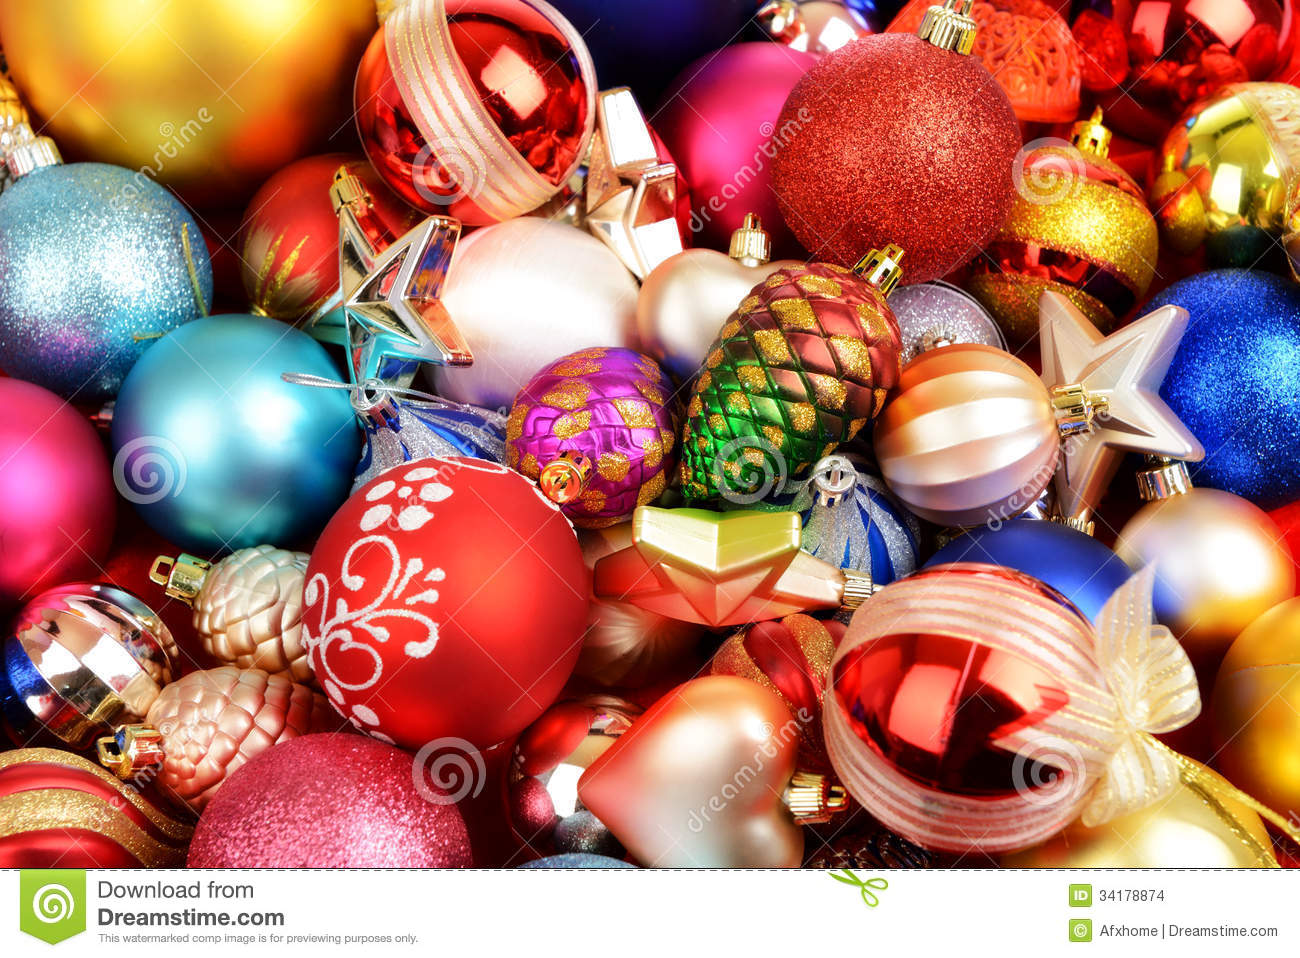 Christmas Toys For Christmas : Christmas toys background stock images image